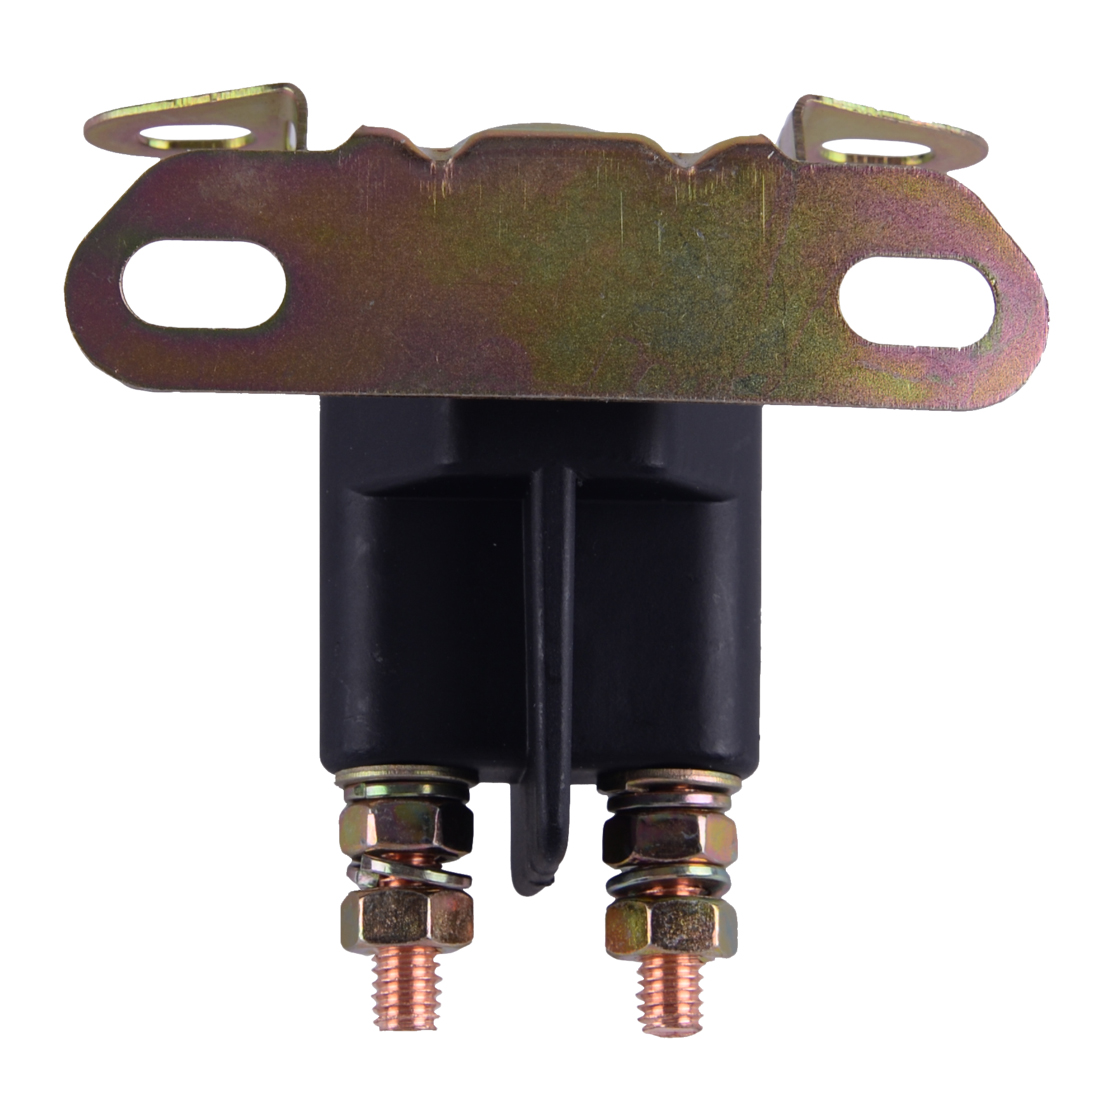 4 Post Starter Solenoid Relay Switch Fit For Toro Timecutter SS 784-1221-210